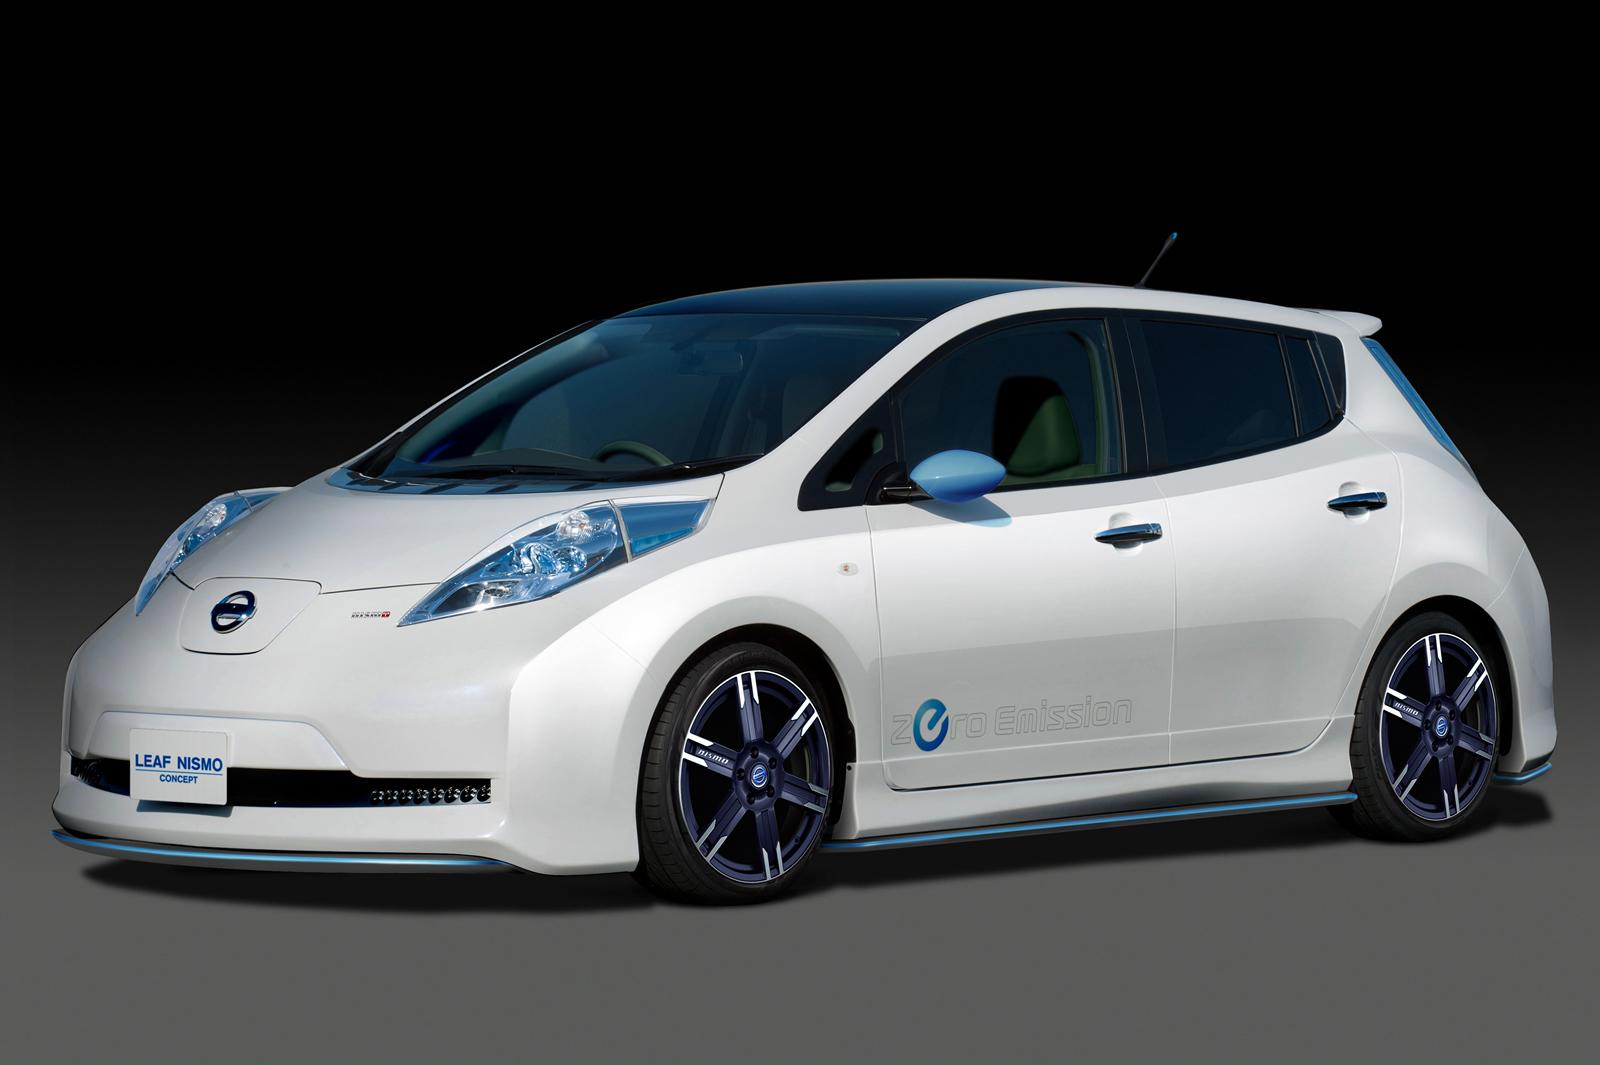 2012 Nissan Leaf Nismo Review - Top Speed